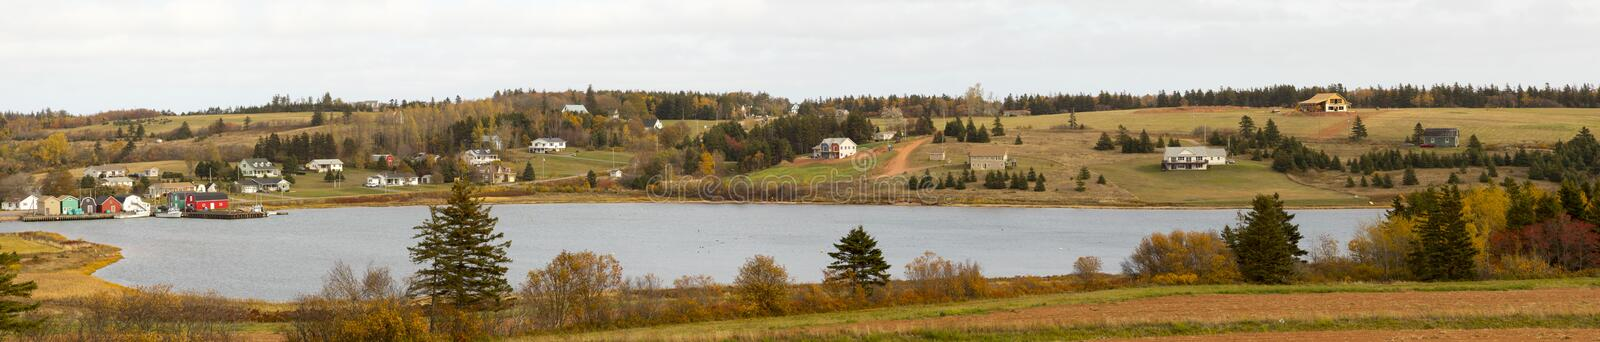 Ann of Green Gables Scenic Drive countryside, PEI, Canada. Houses on hills along Ann of Green Gables Scenic Drive on Prince Edward Island, Canada on fall day stock photo